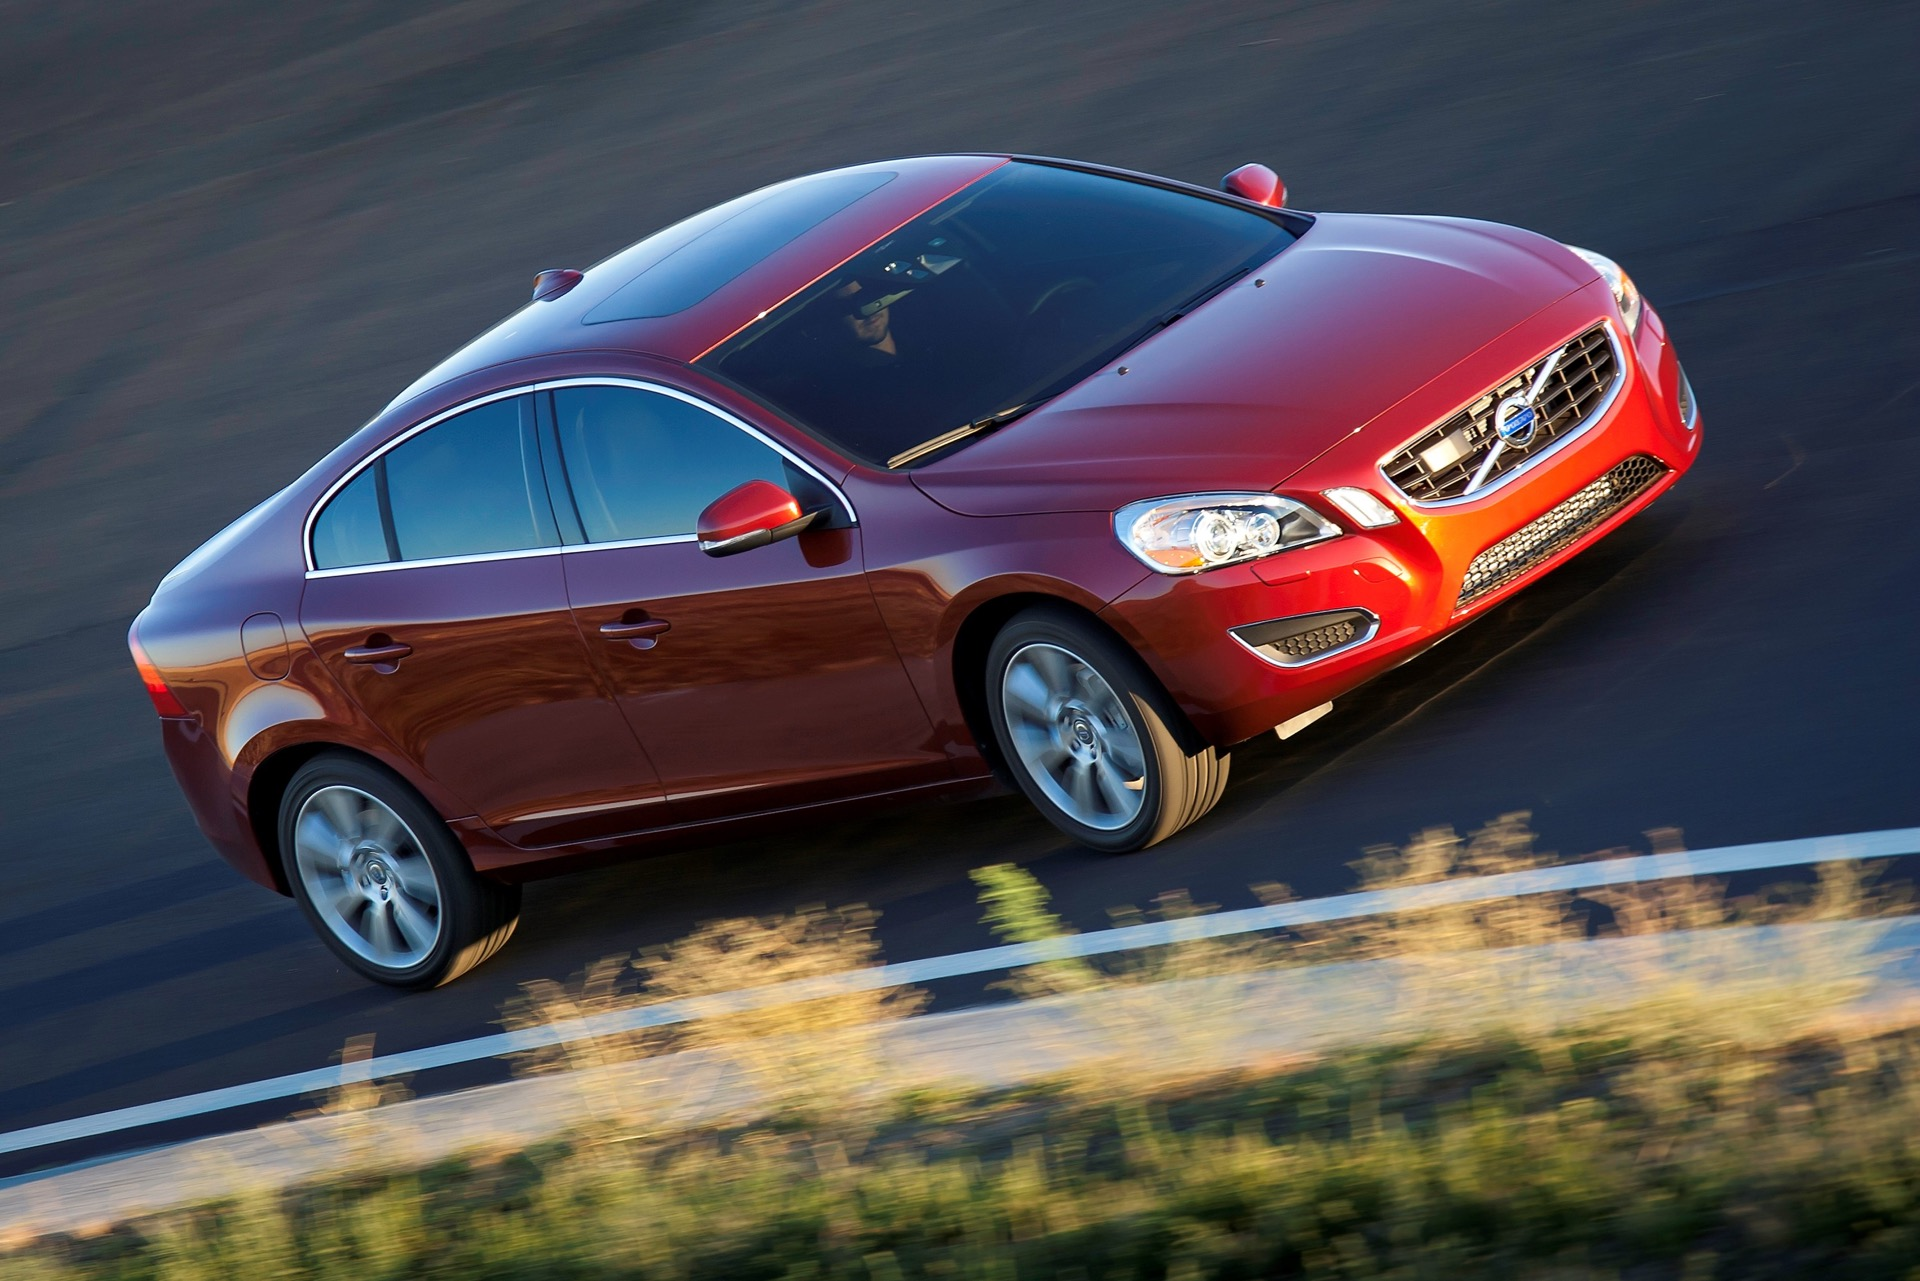 S60 T6 Awd Driving Action12 -  Volvo